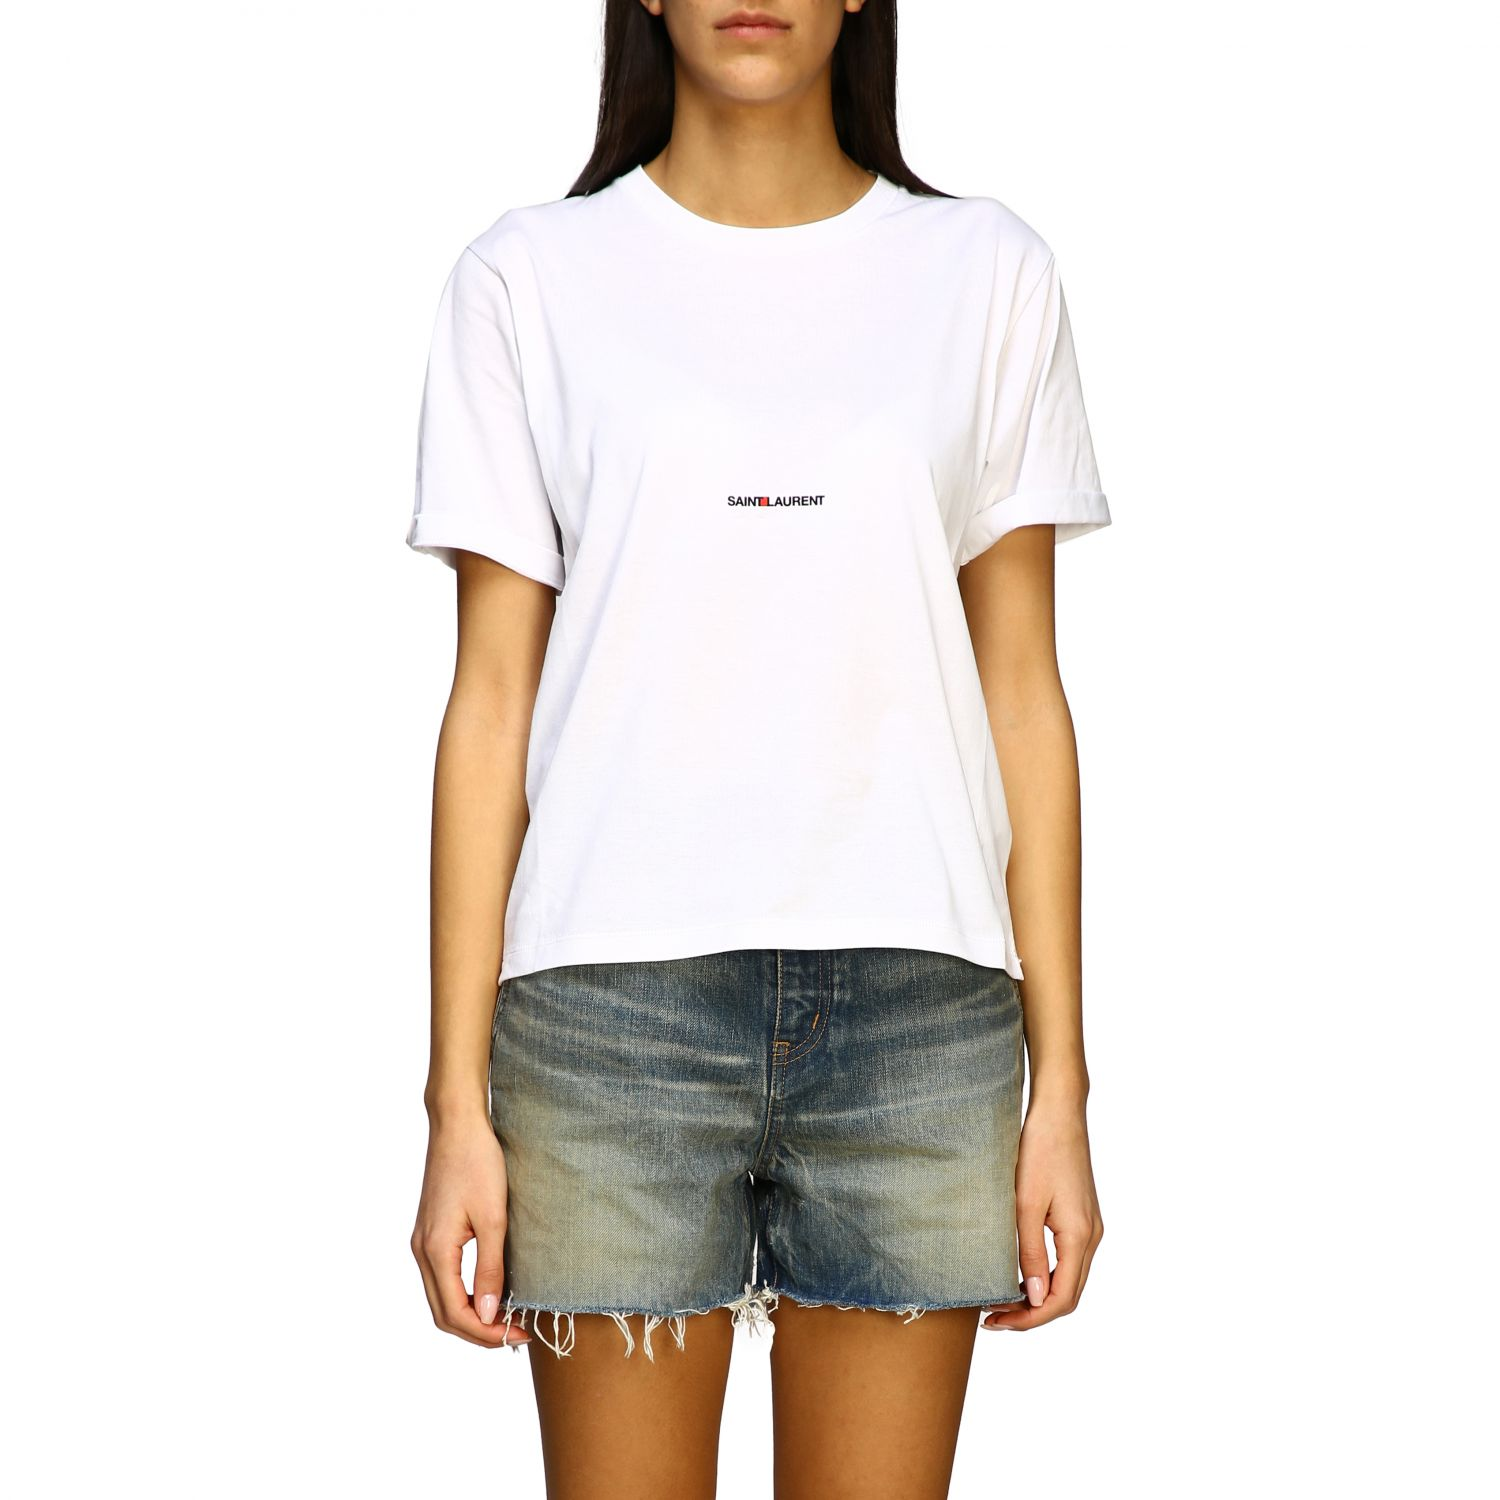 Saint Laurent T-Shirt mit Logo weiß 1